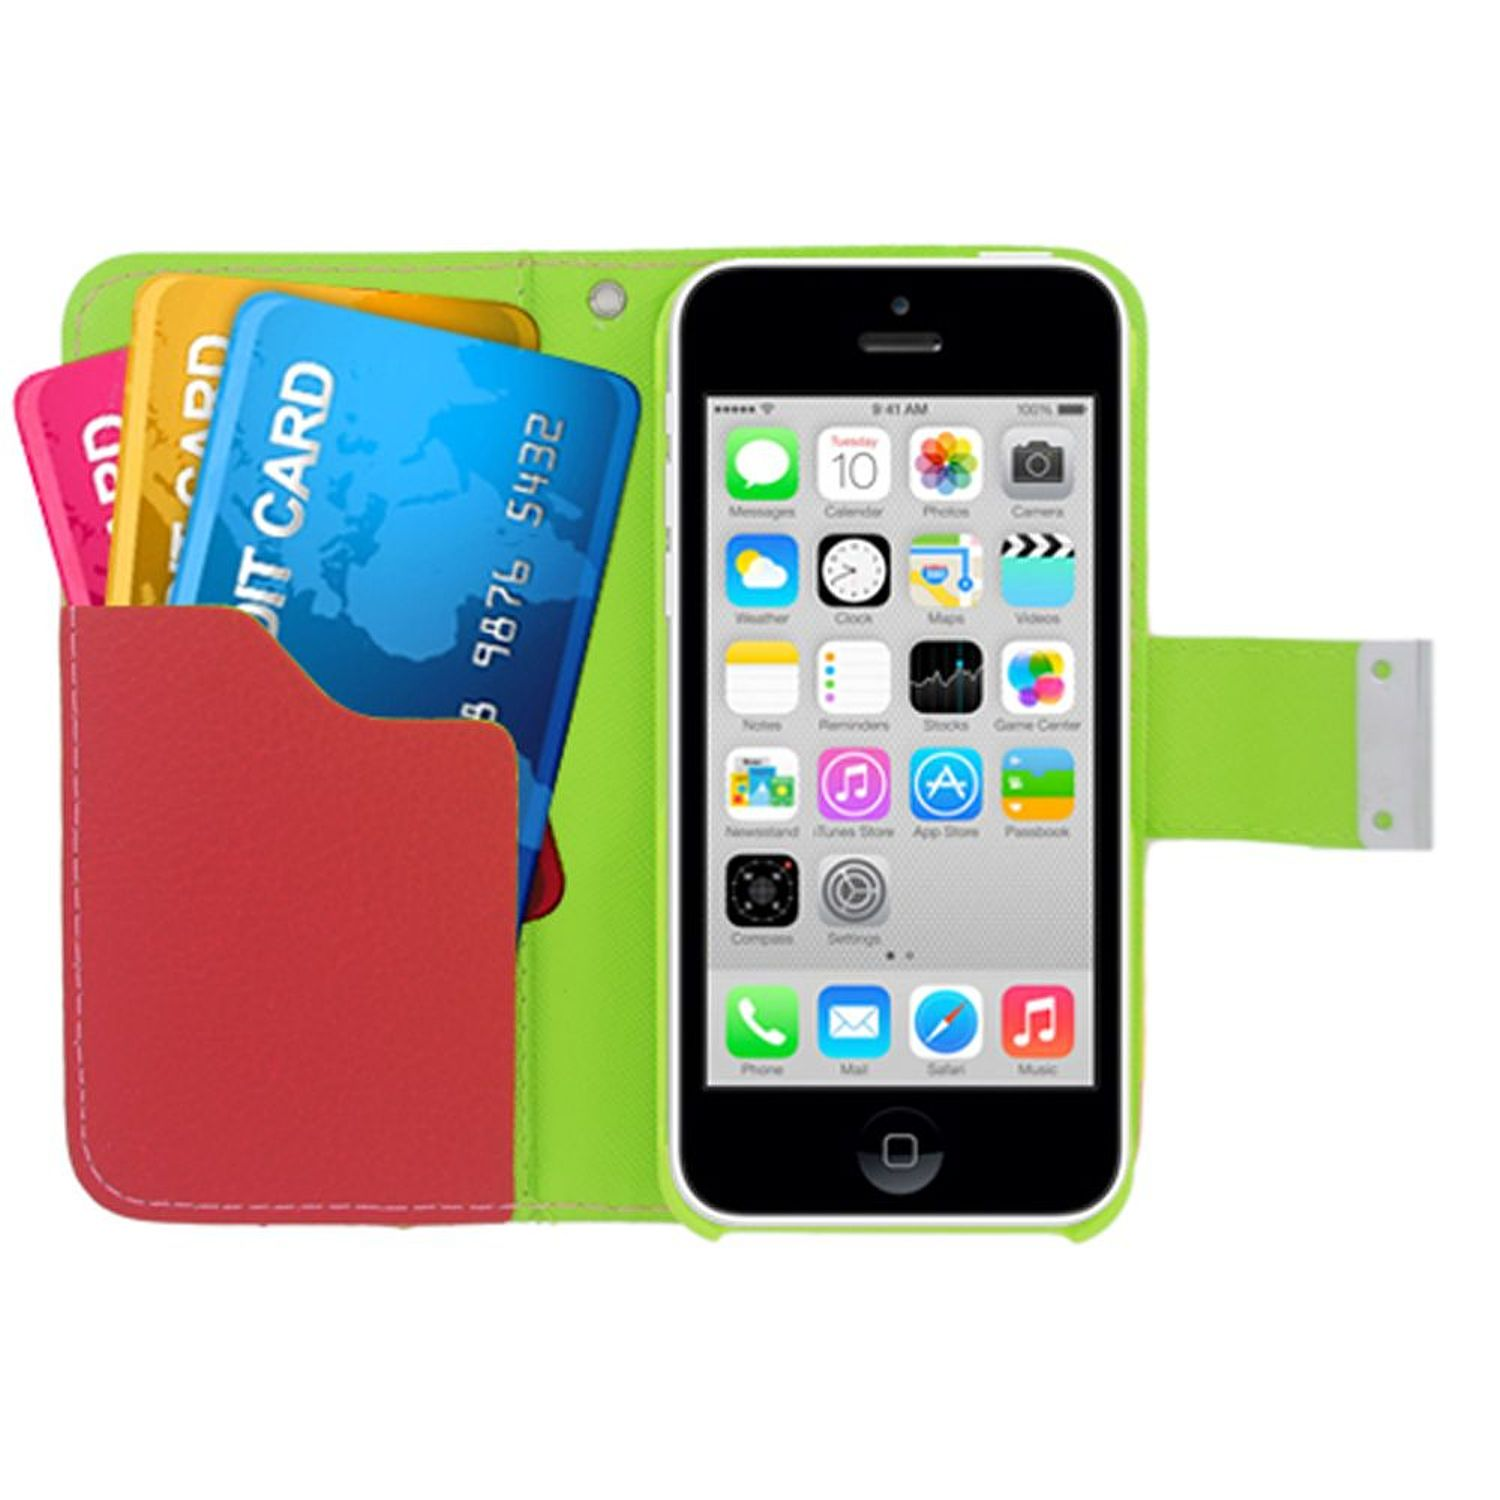 Insten Multicolor Folio Flip Leather [Card Slot] Wallet Flap Pouch Case Cover For Apple iPhone 5C, Yellow/Pink